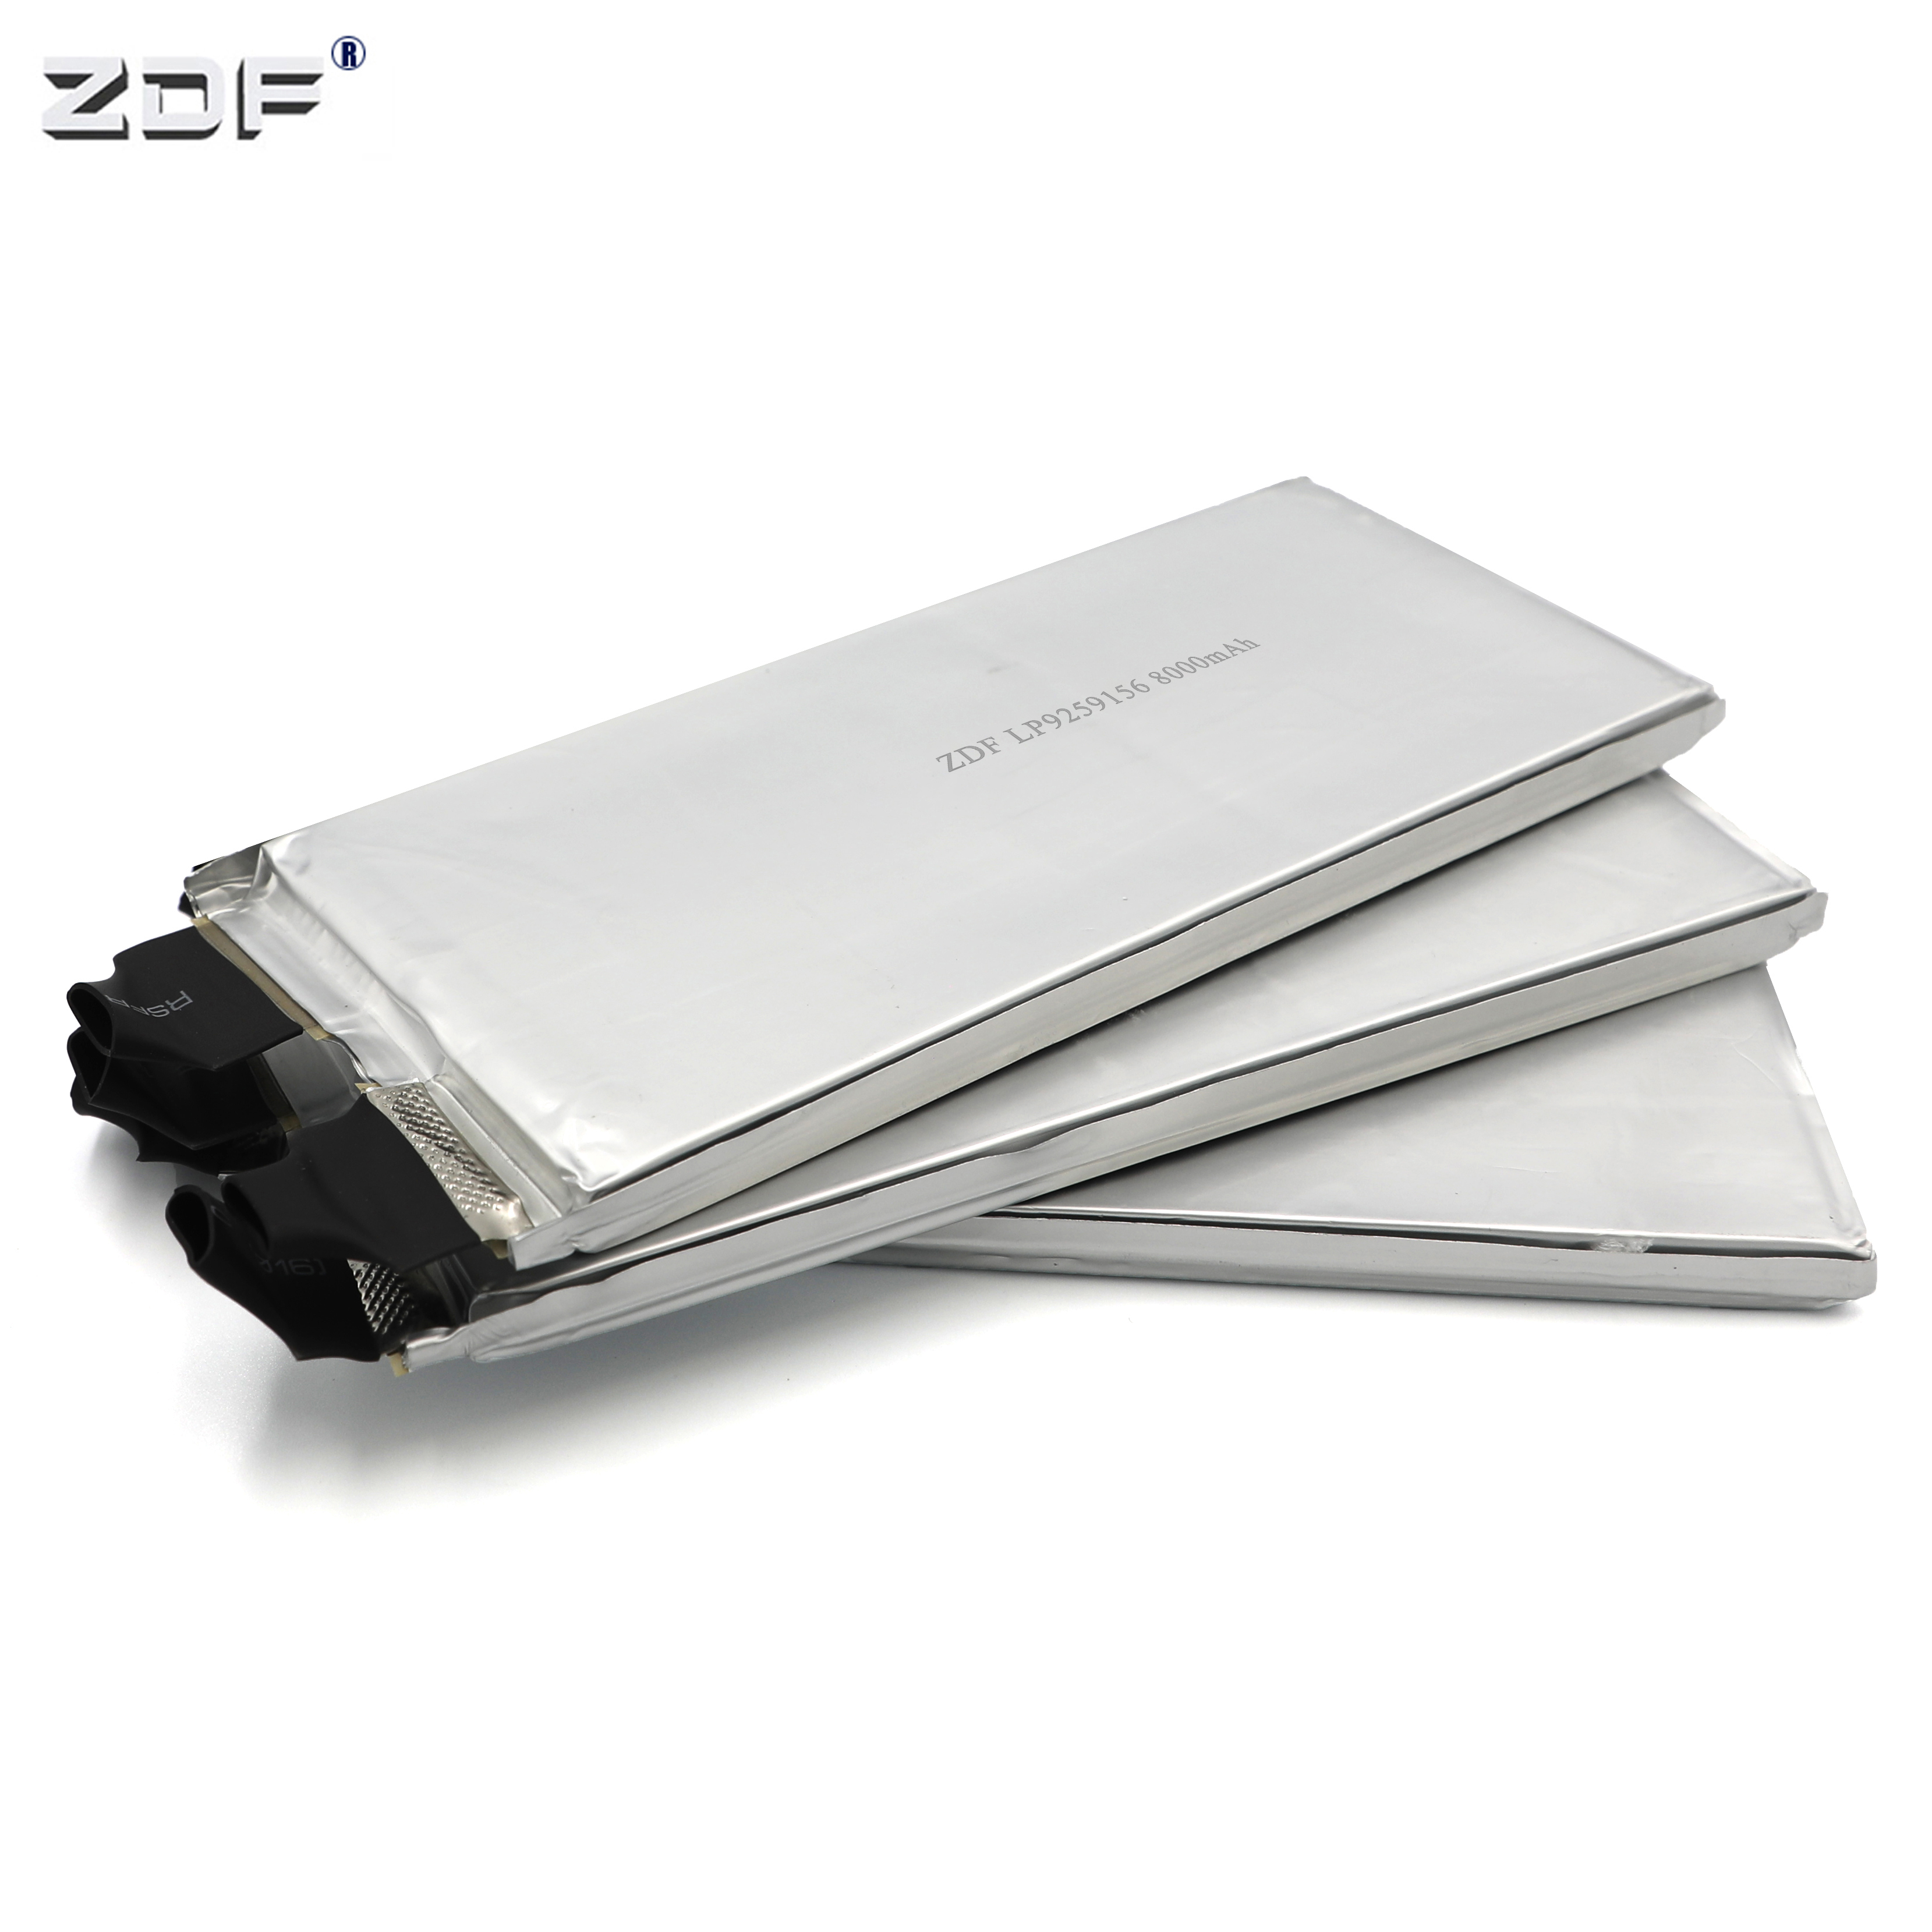 ZDF 3.7V 5000mAh 6000mAh 8000mah 10000mAh 12000mAh <font><b>16000mAh</b></font> 25C 35C 50C lipo <font><b>battery</b></font> cell for diy RC UAV Drone 2S 3S 4S 5S 6S image